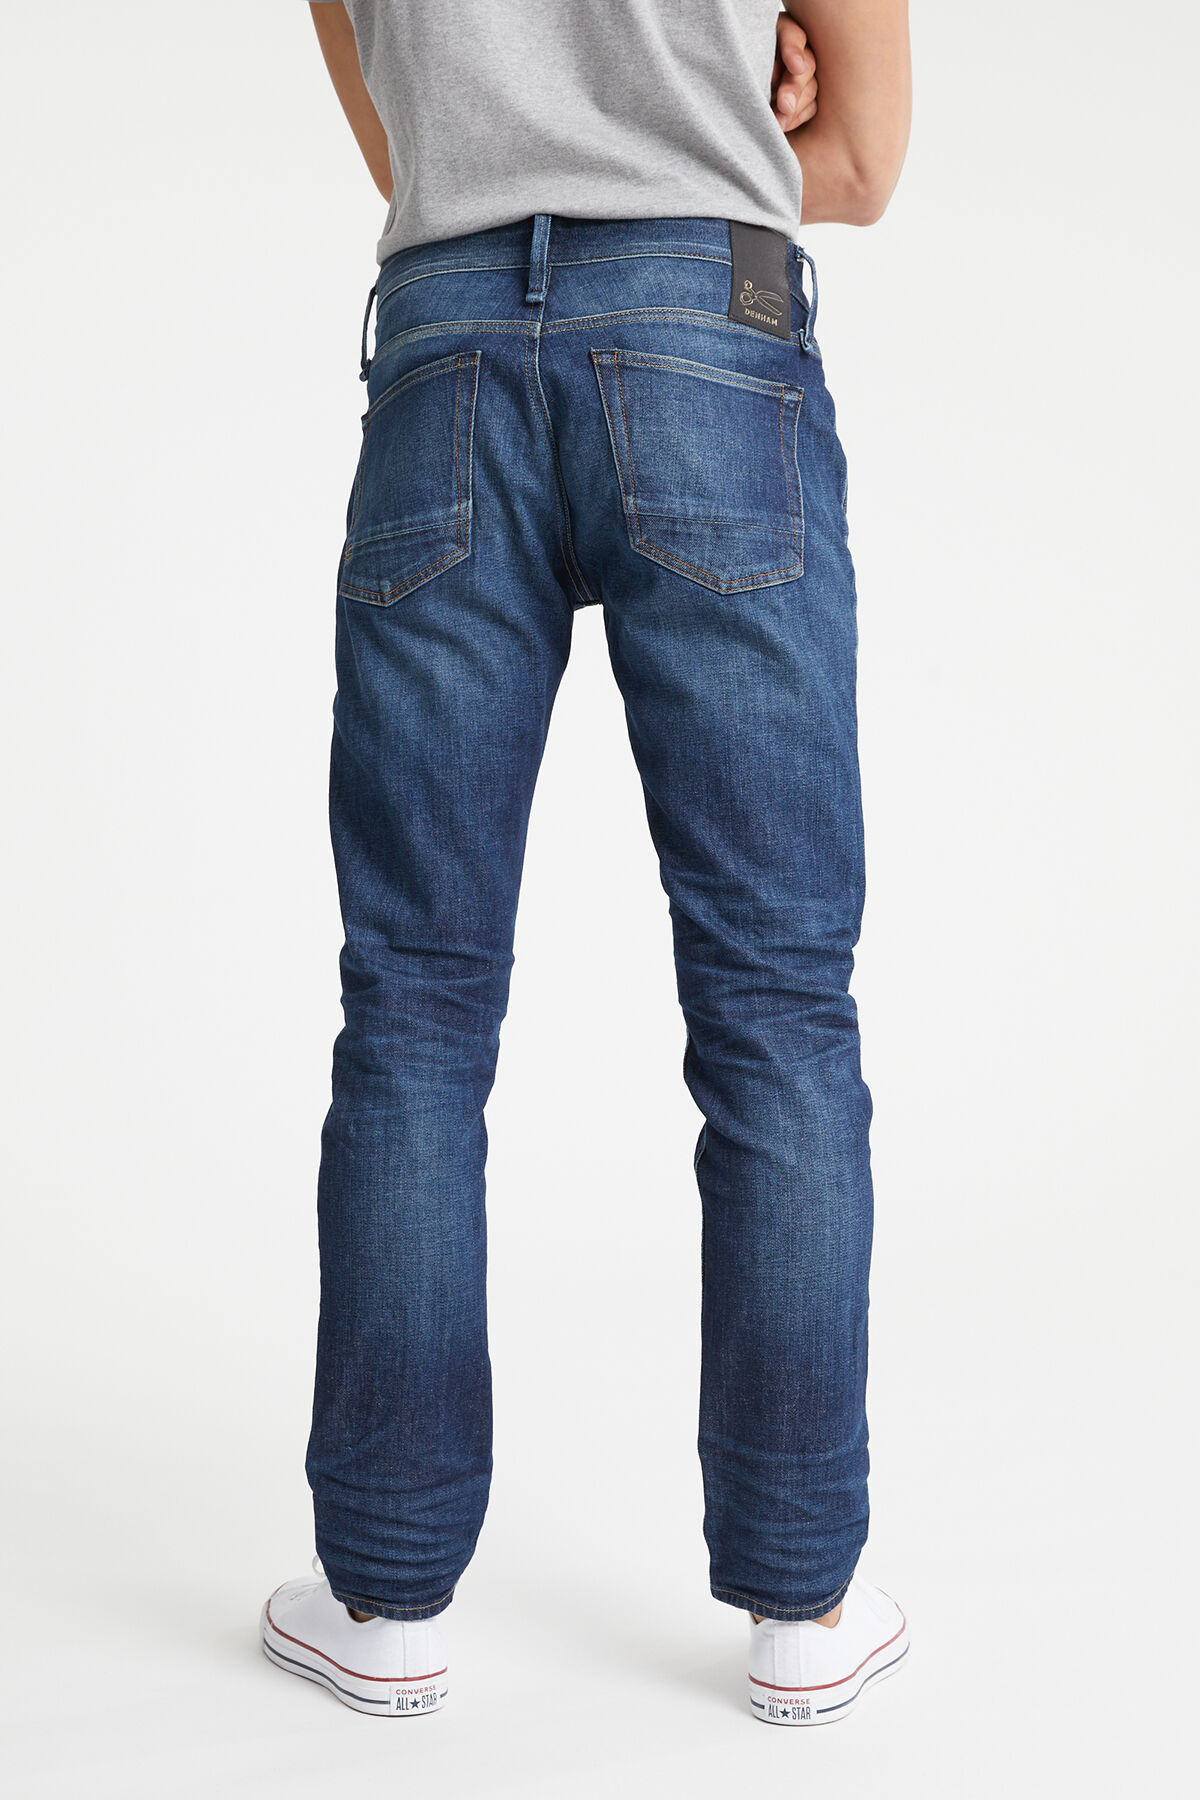 RAZOR Two Year Indigo Denim - Slim Fit